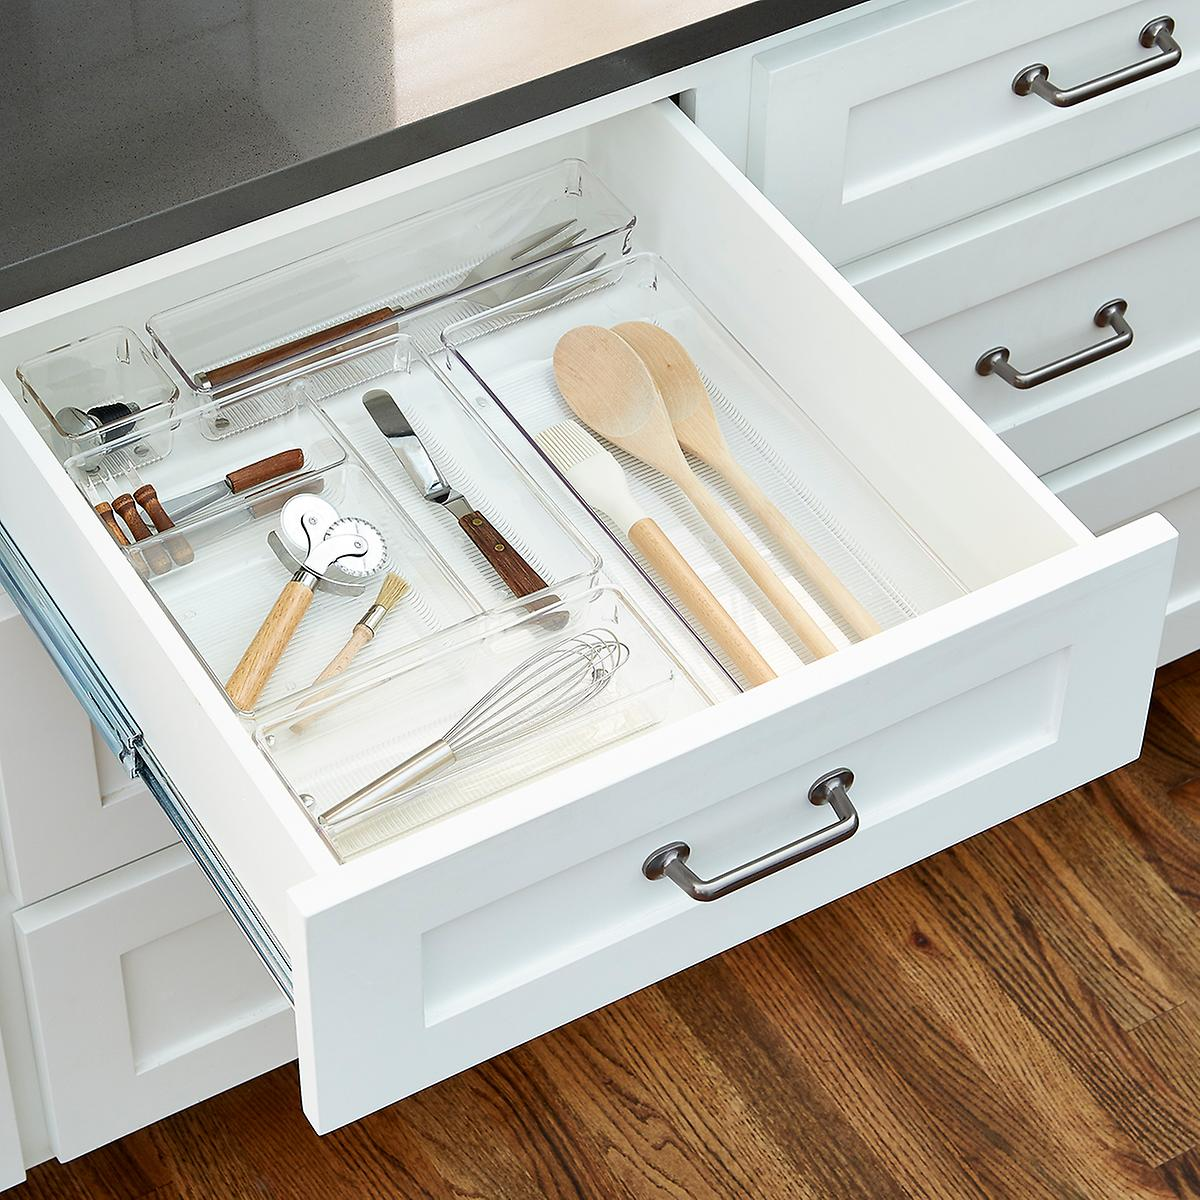 iDesign Linus Medium Drawer Organizer Starter Kit